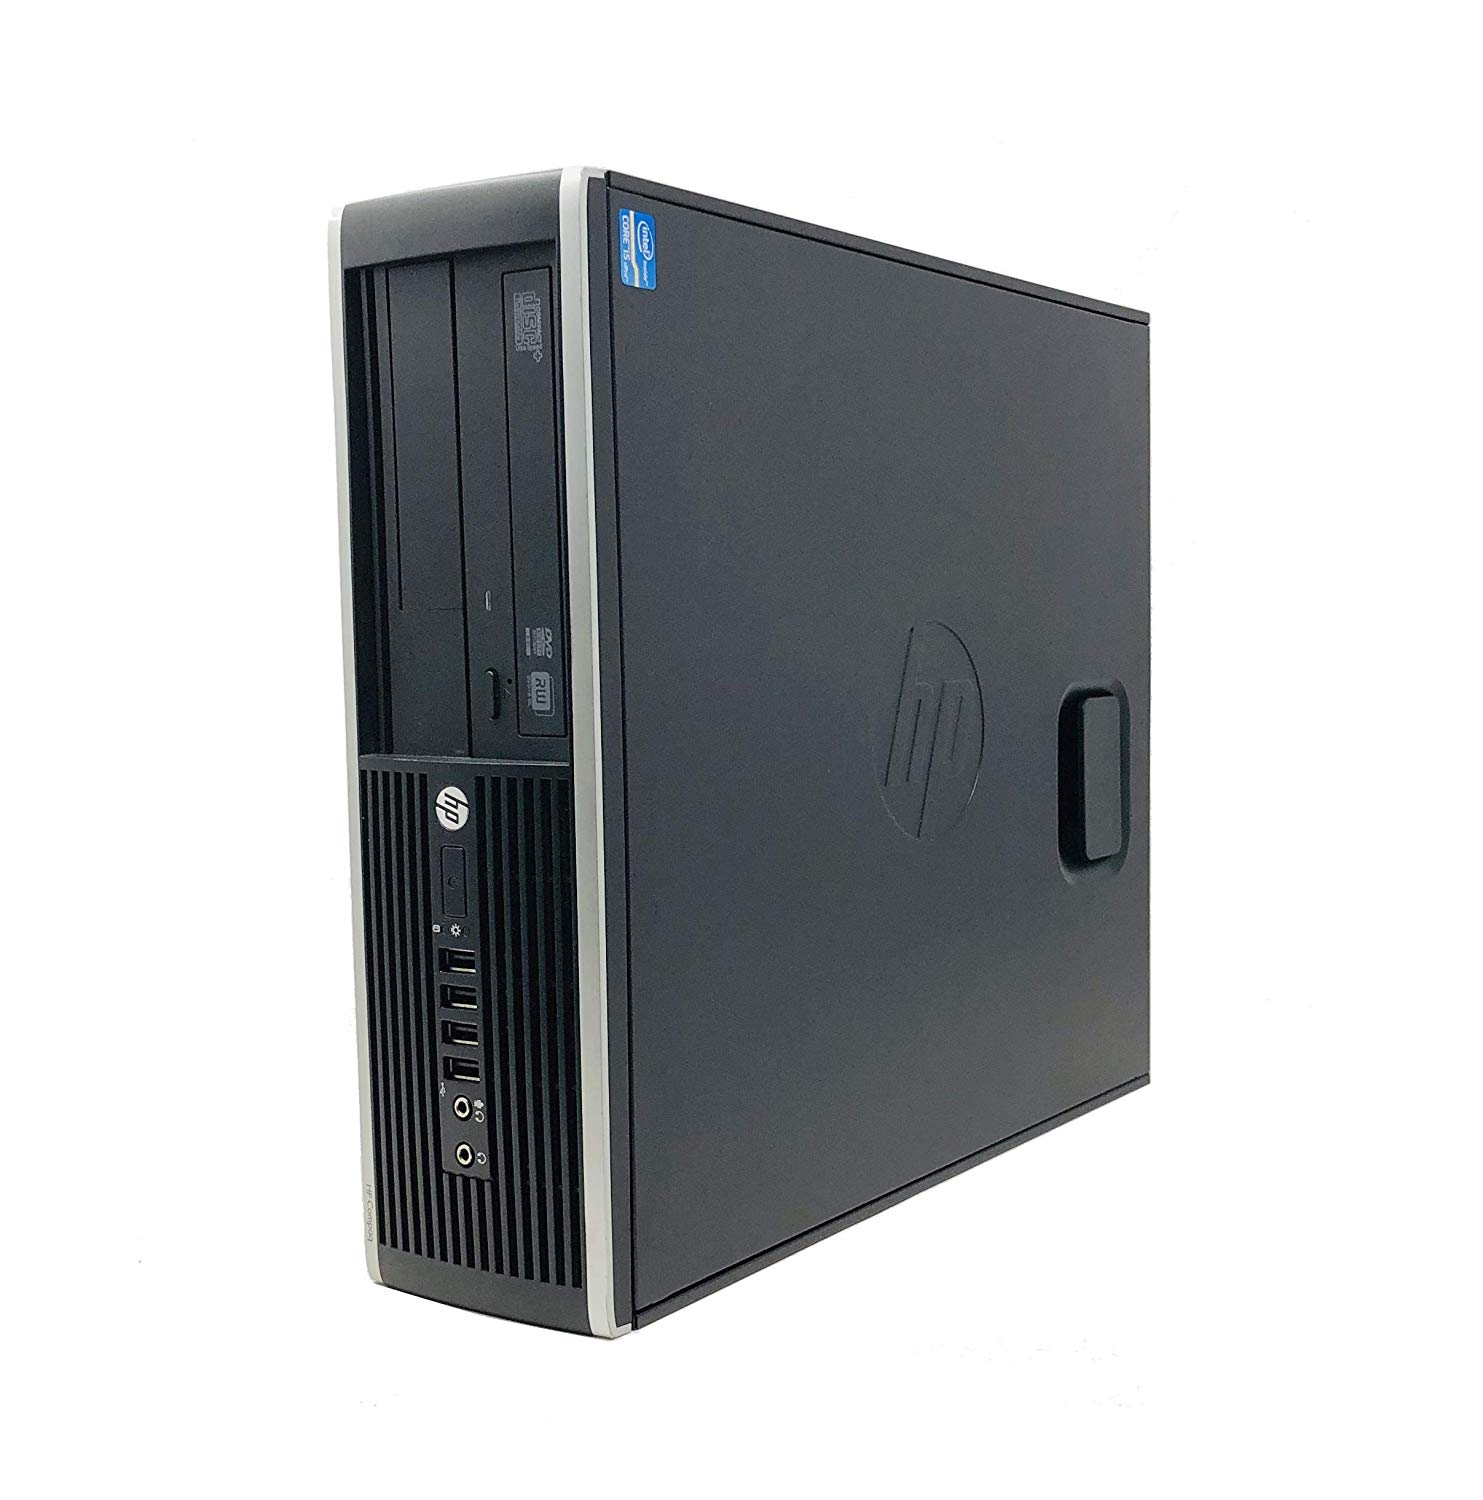 Hp Elite 8200 - Ordenador de sobremesa (<font><b>Intel</b></font> <font><b>i5</b></font>-<font><b>2400</b></font>, 8GB de RAM, Disco SSD de 120GB , Windows 7 PRO ) - Negro (Reacondicionado) image